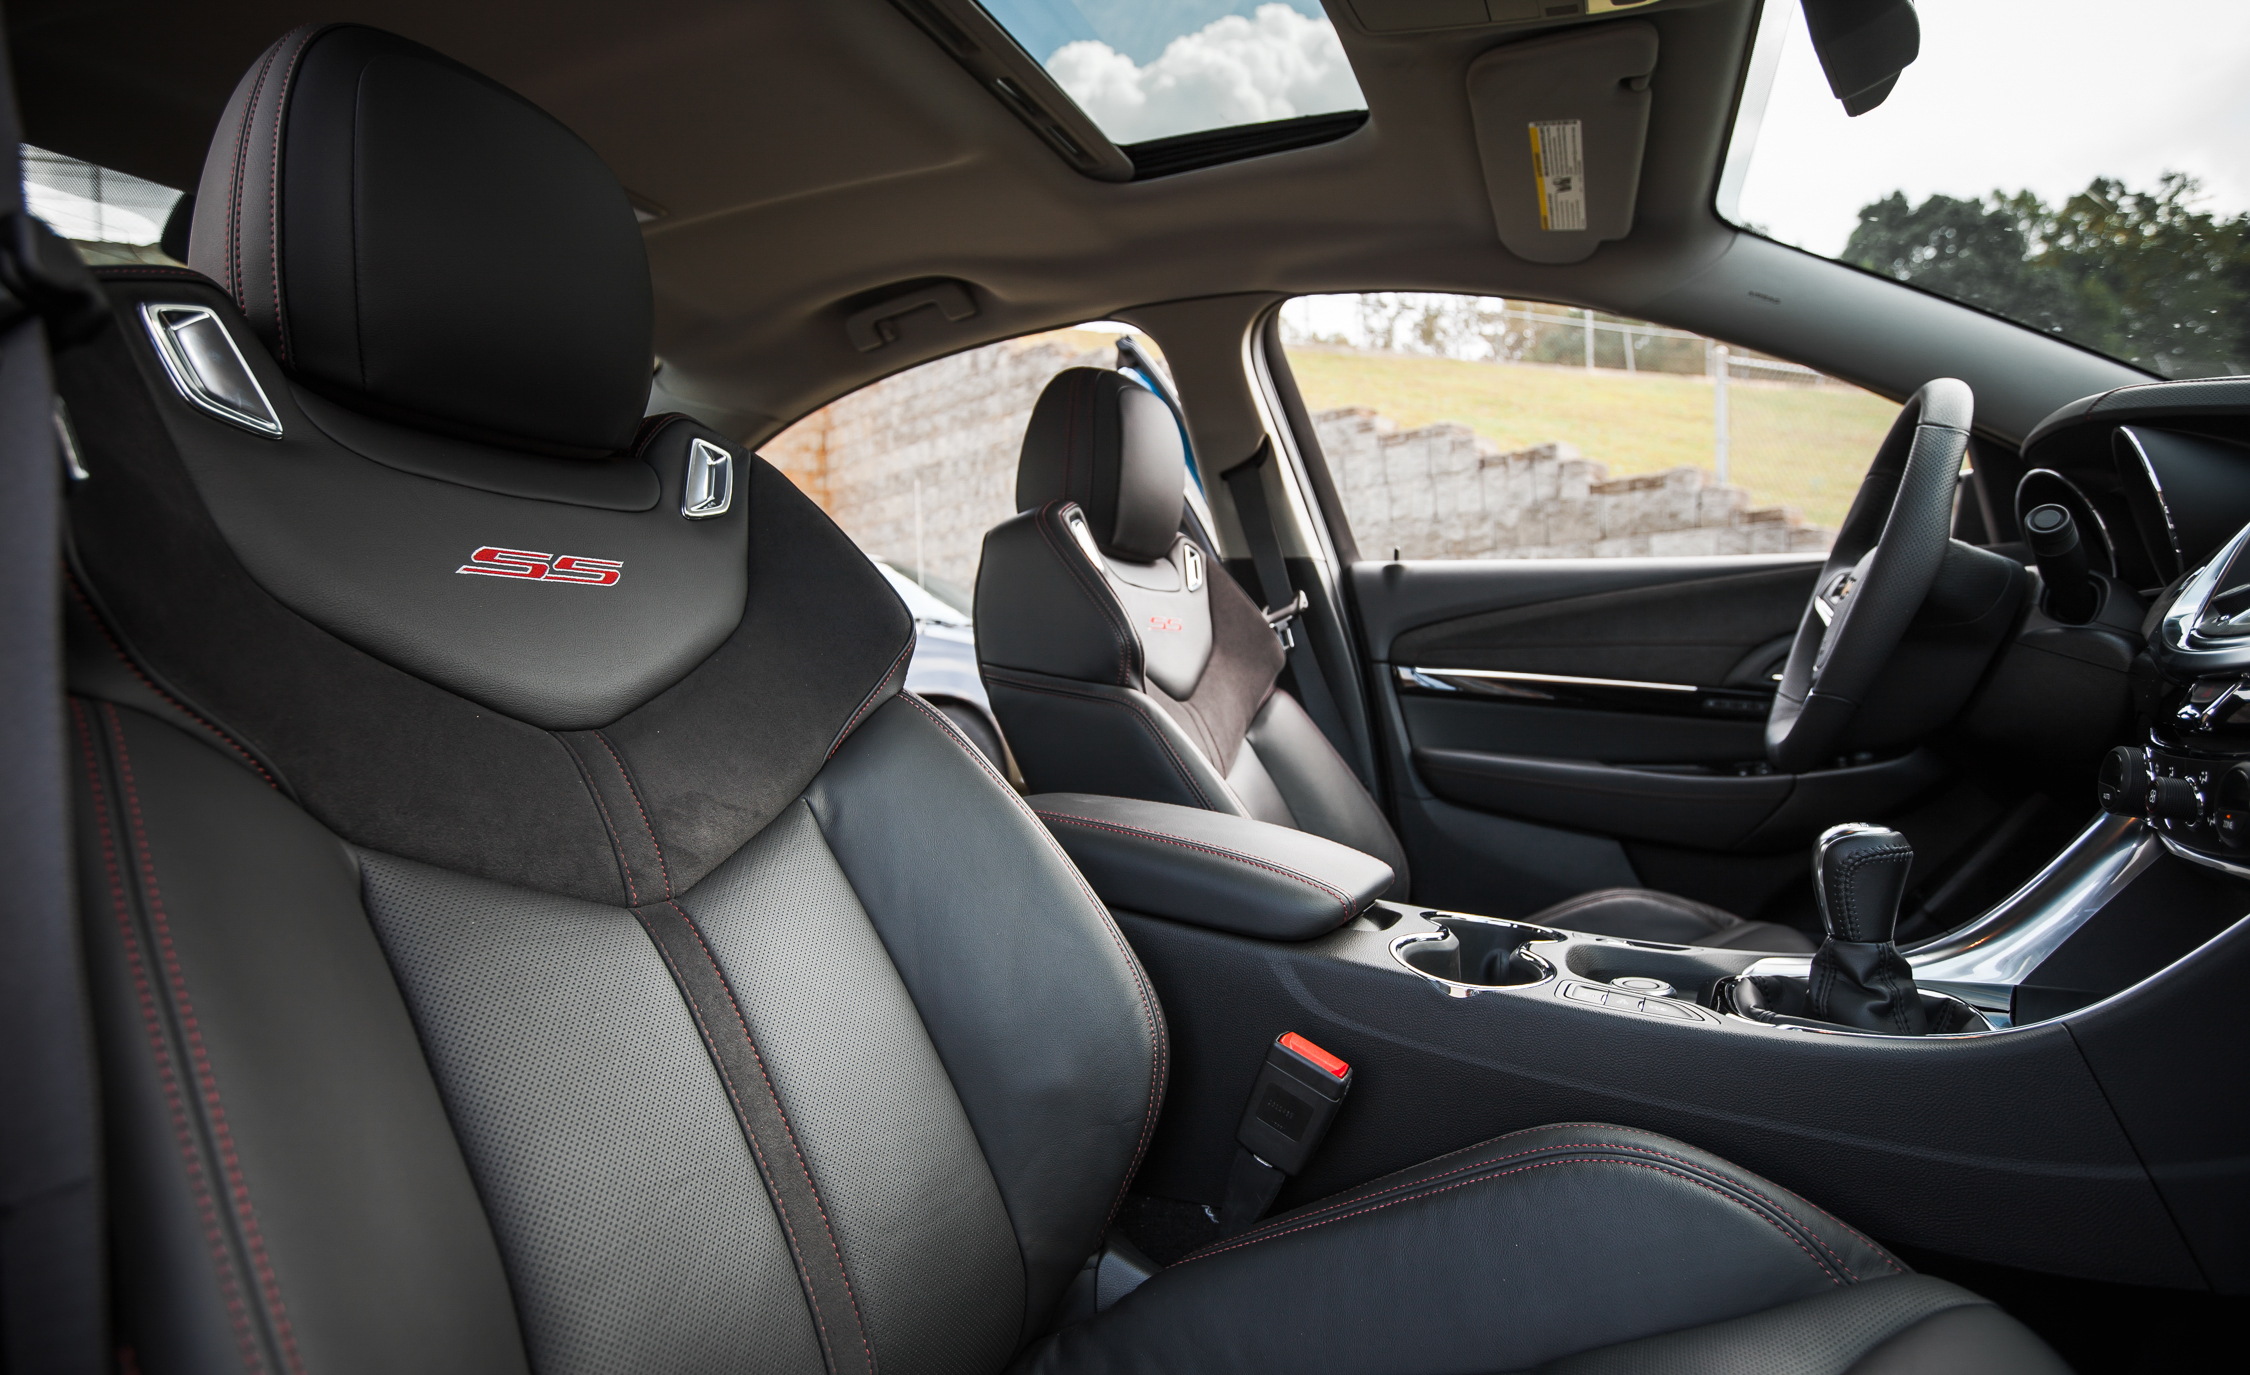 2015 Chevrolet SS Interior Front Seats